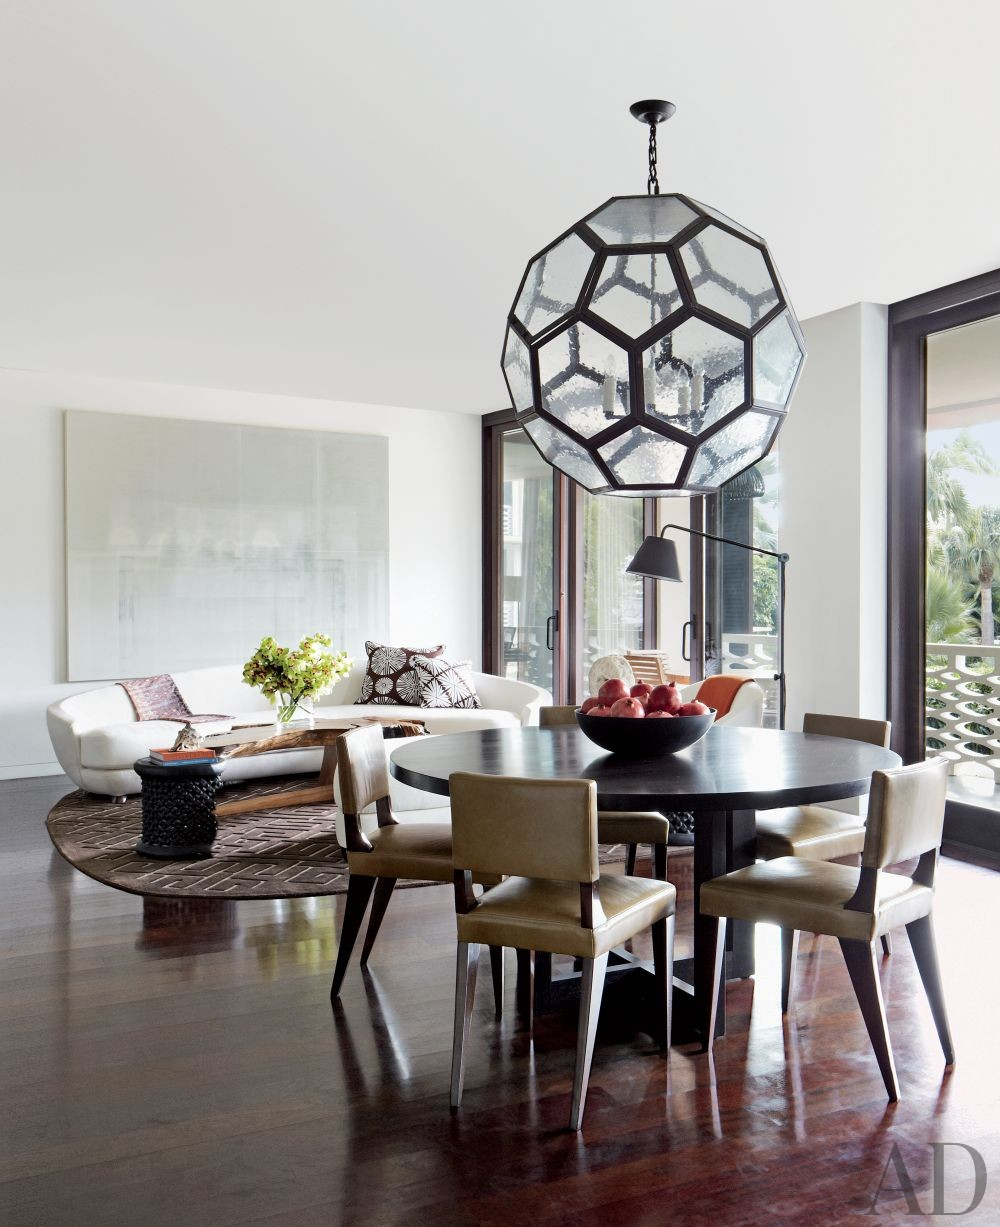 Contemporary Dining Room by Tsao & McKown Architects and Tsao & McKown Architects in Palm Beach, Florida